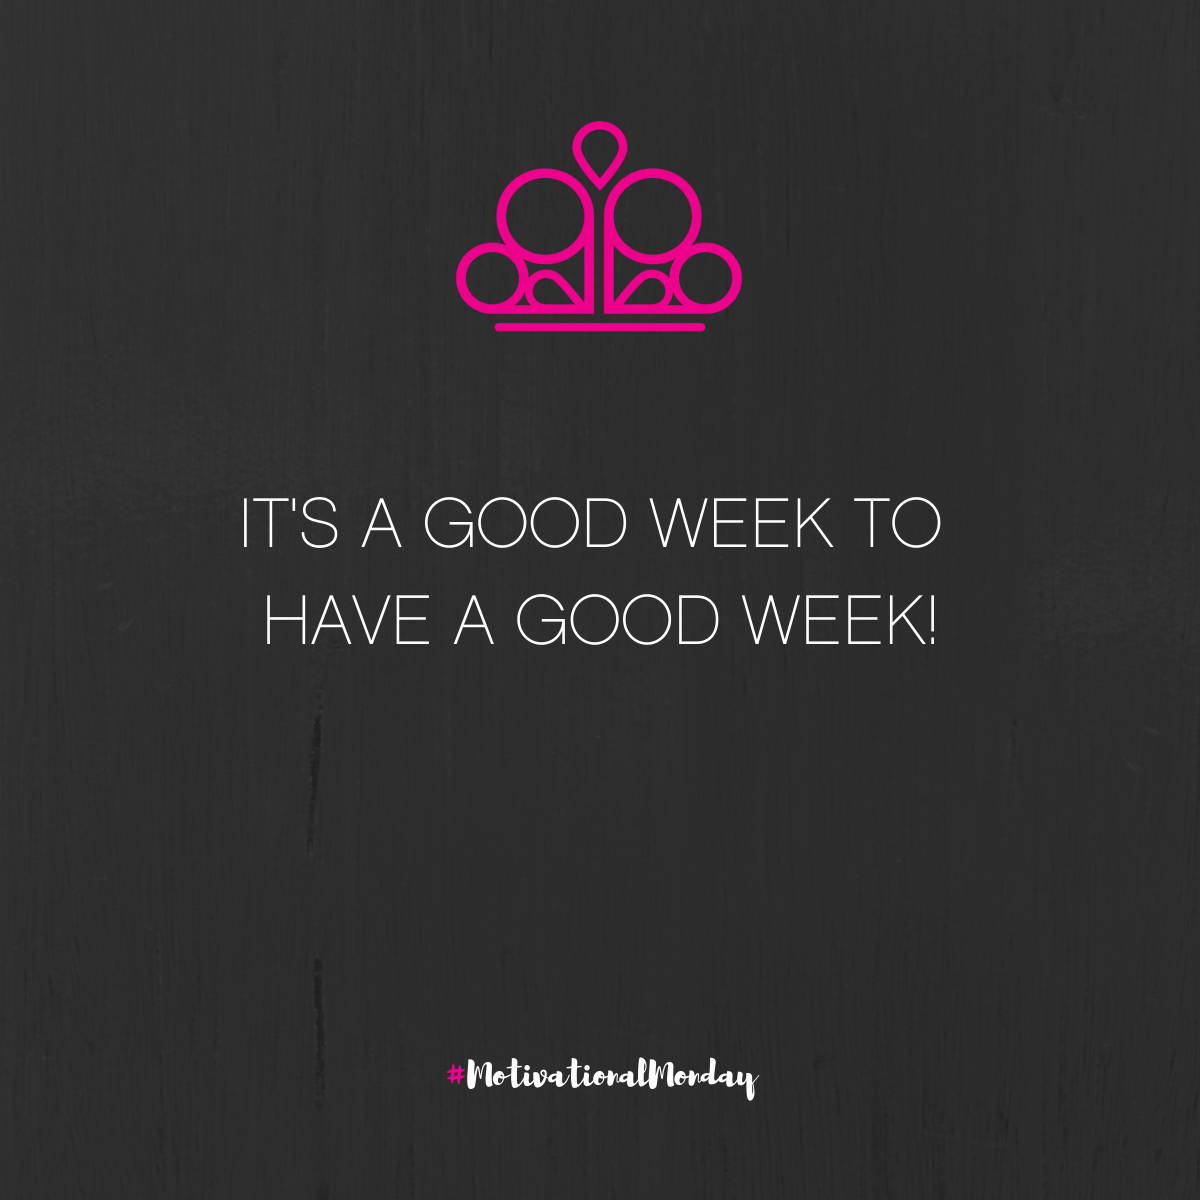 #MotivationalMonday How are you going to make this week a good week?pic.twitter.com/xzj3ontogT